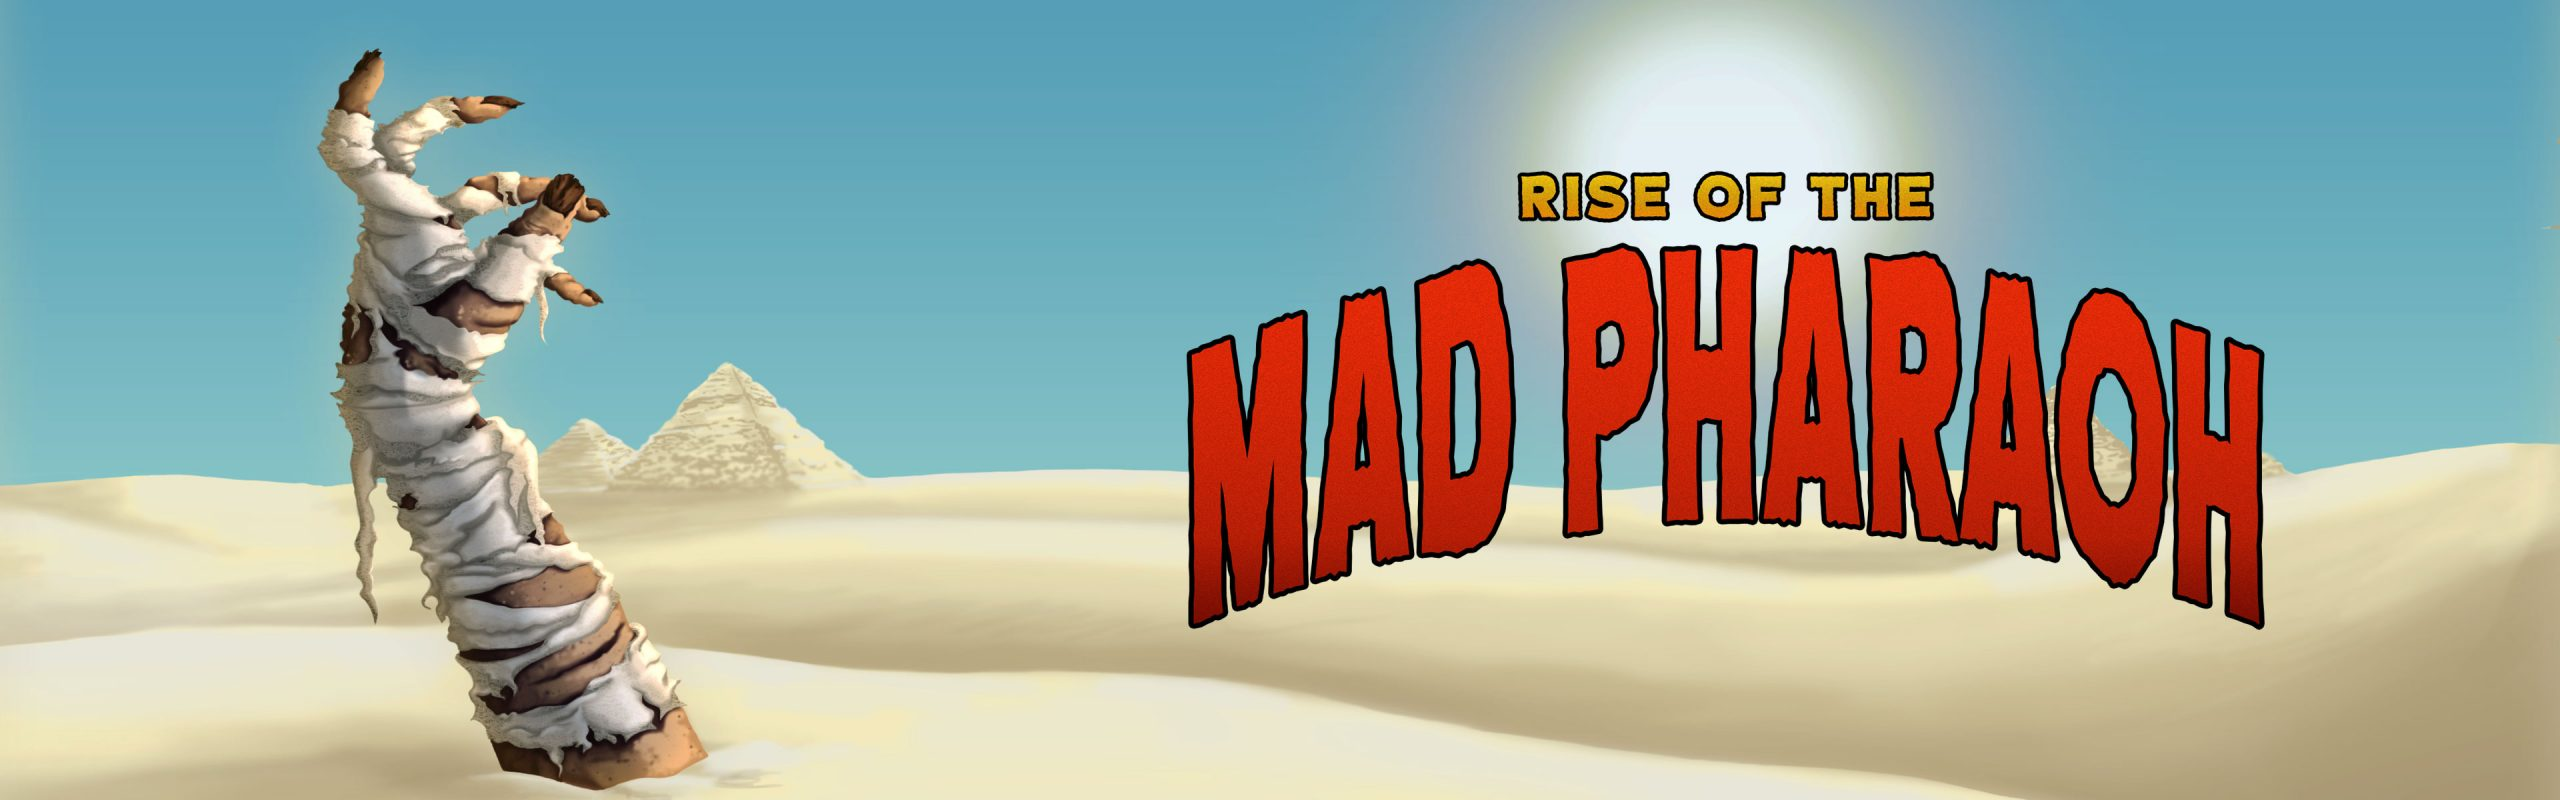 Rise of the Mad Pharaoh